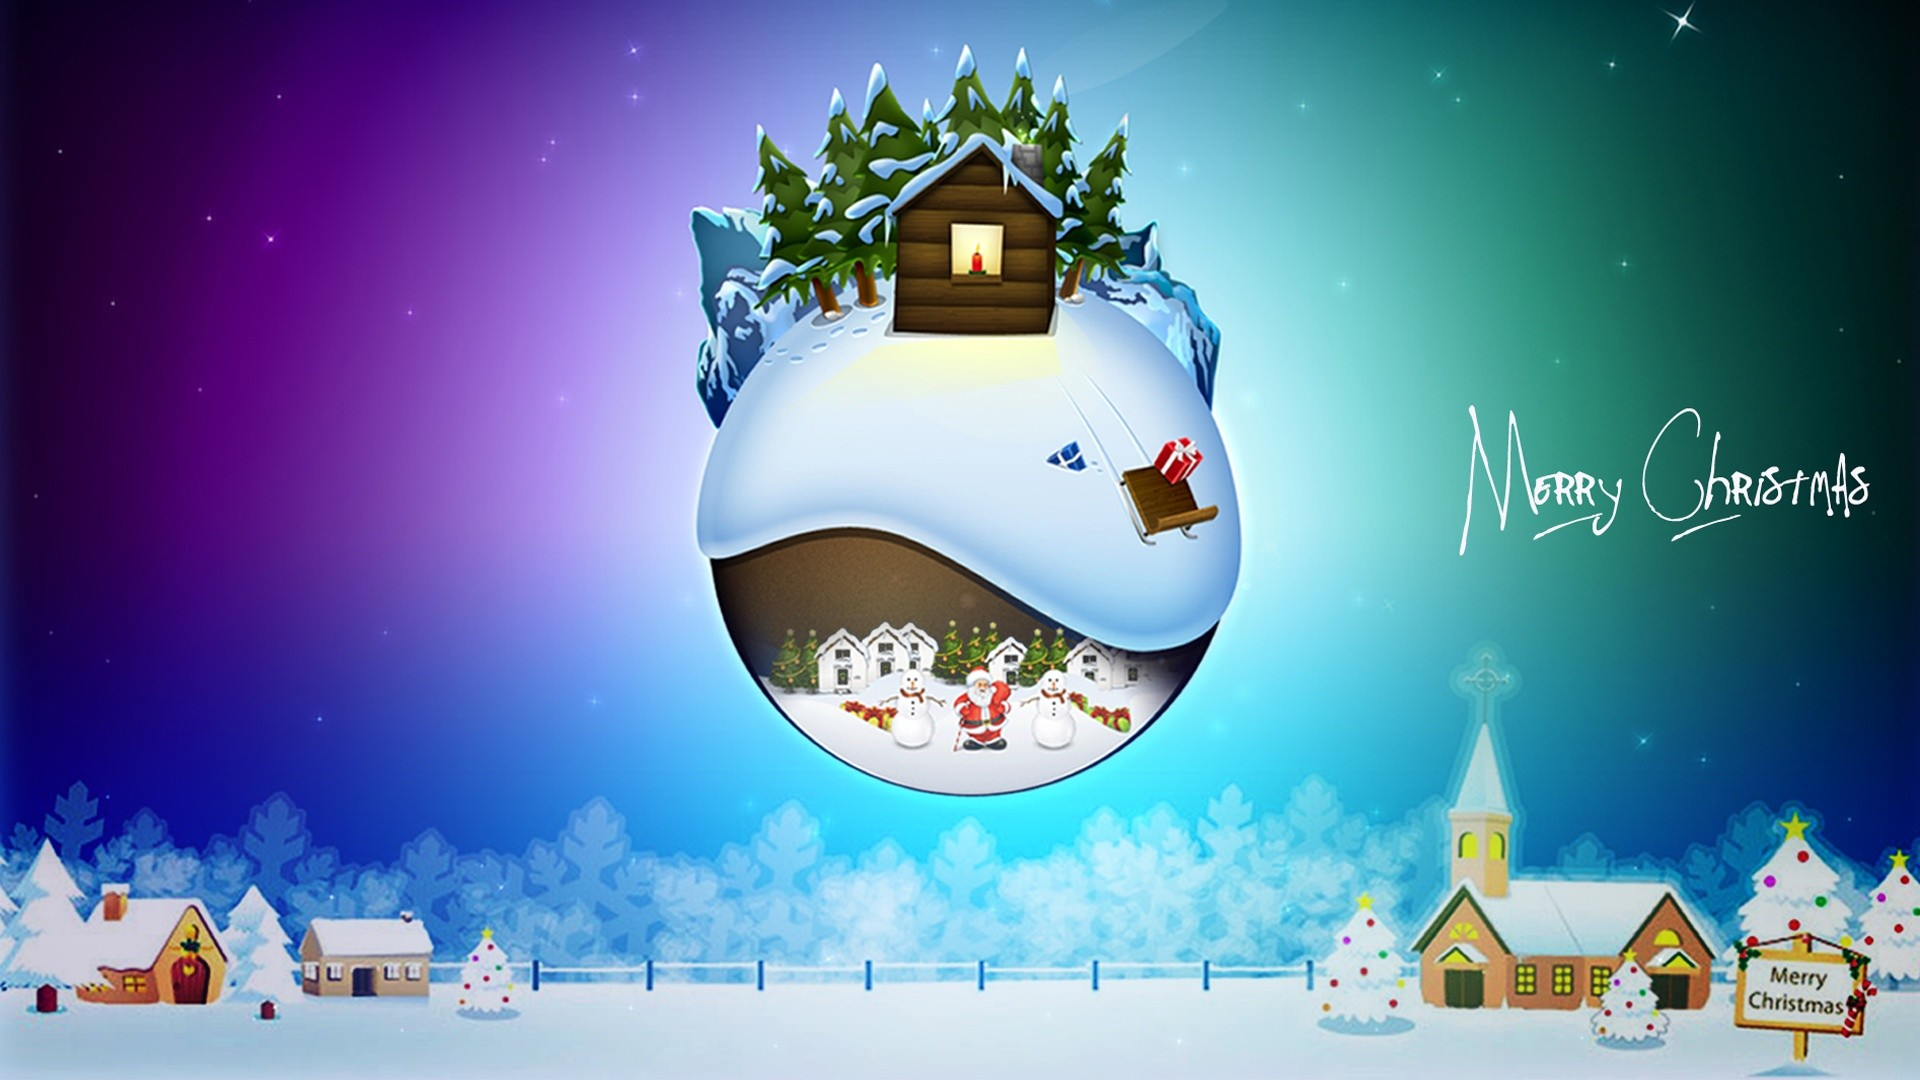 Merry christmas cartoon pictures or wallpapers 2015